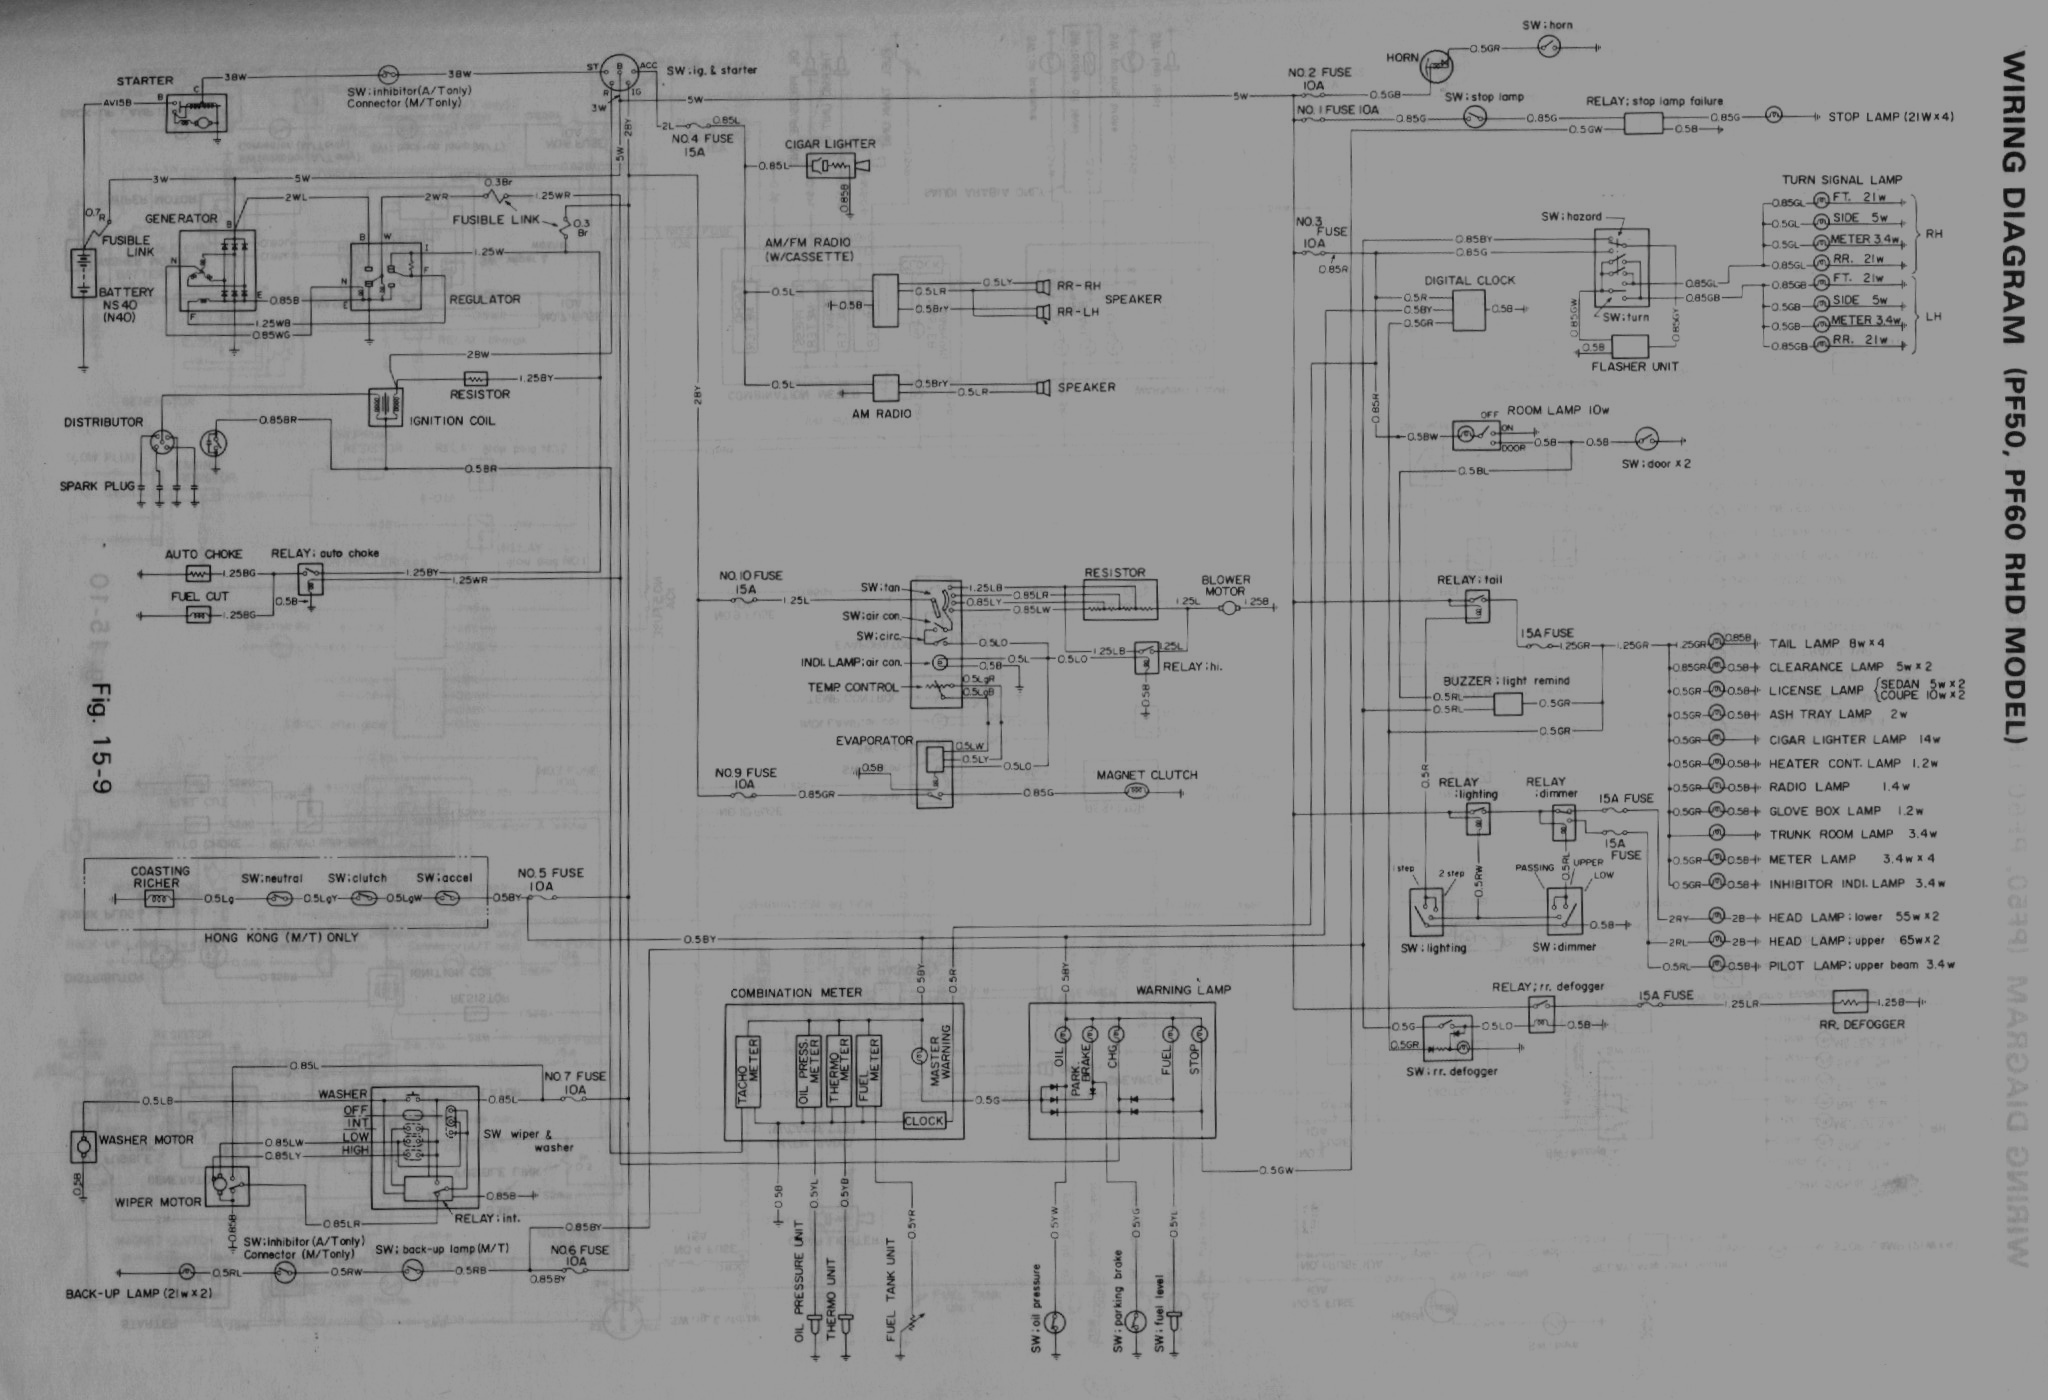 Isuzu Gemini Wiring Diagram Reinvent Your Fuel Other Diagrams Holden Mods Rh Geminimods Com Truck Rodeo Fuse Box